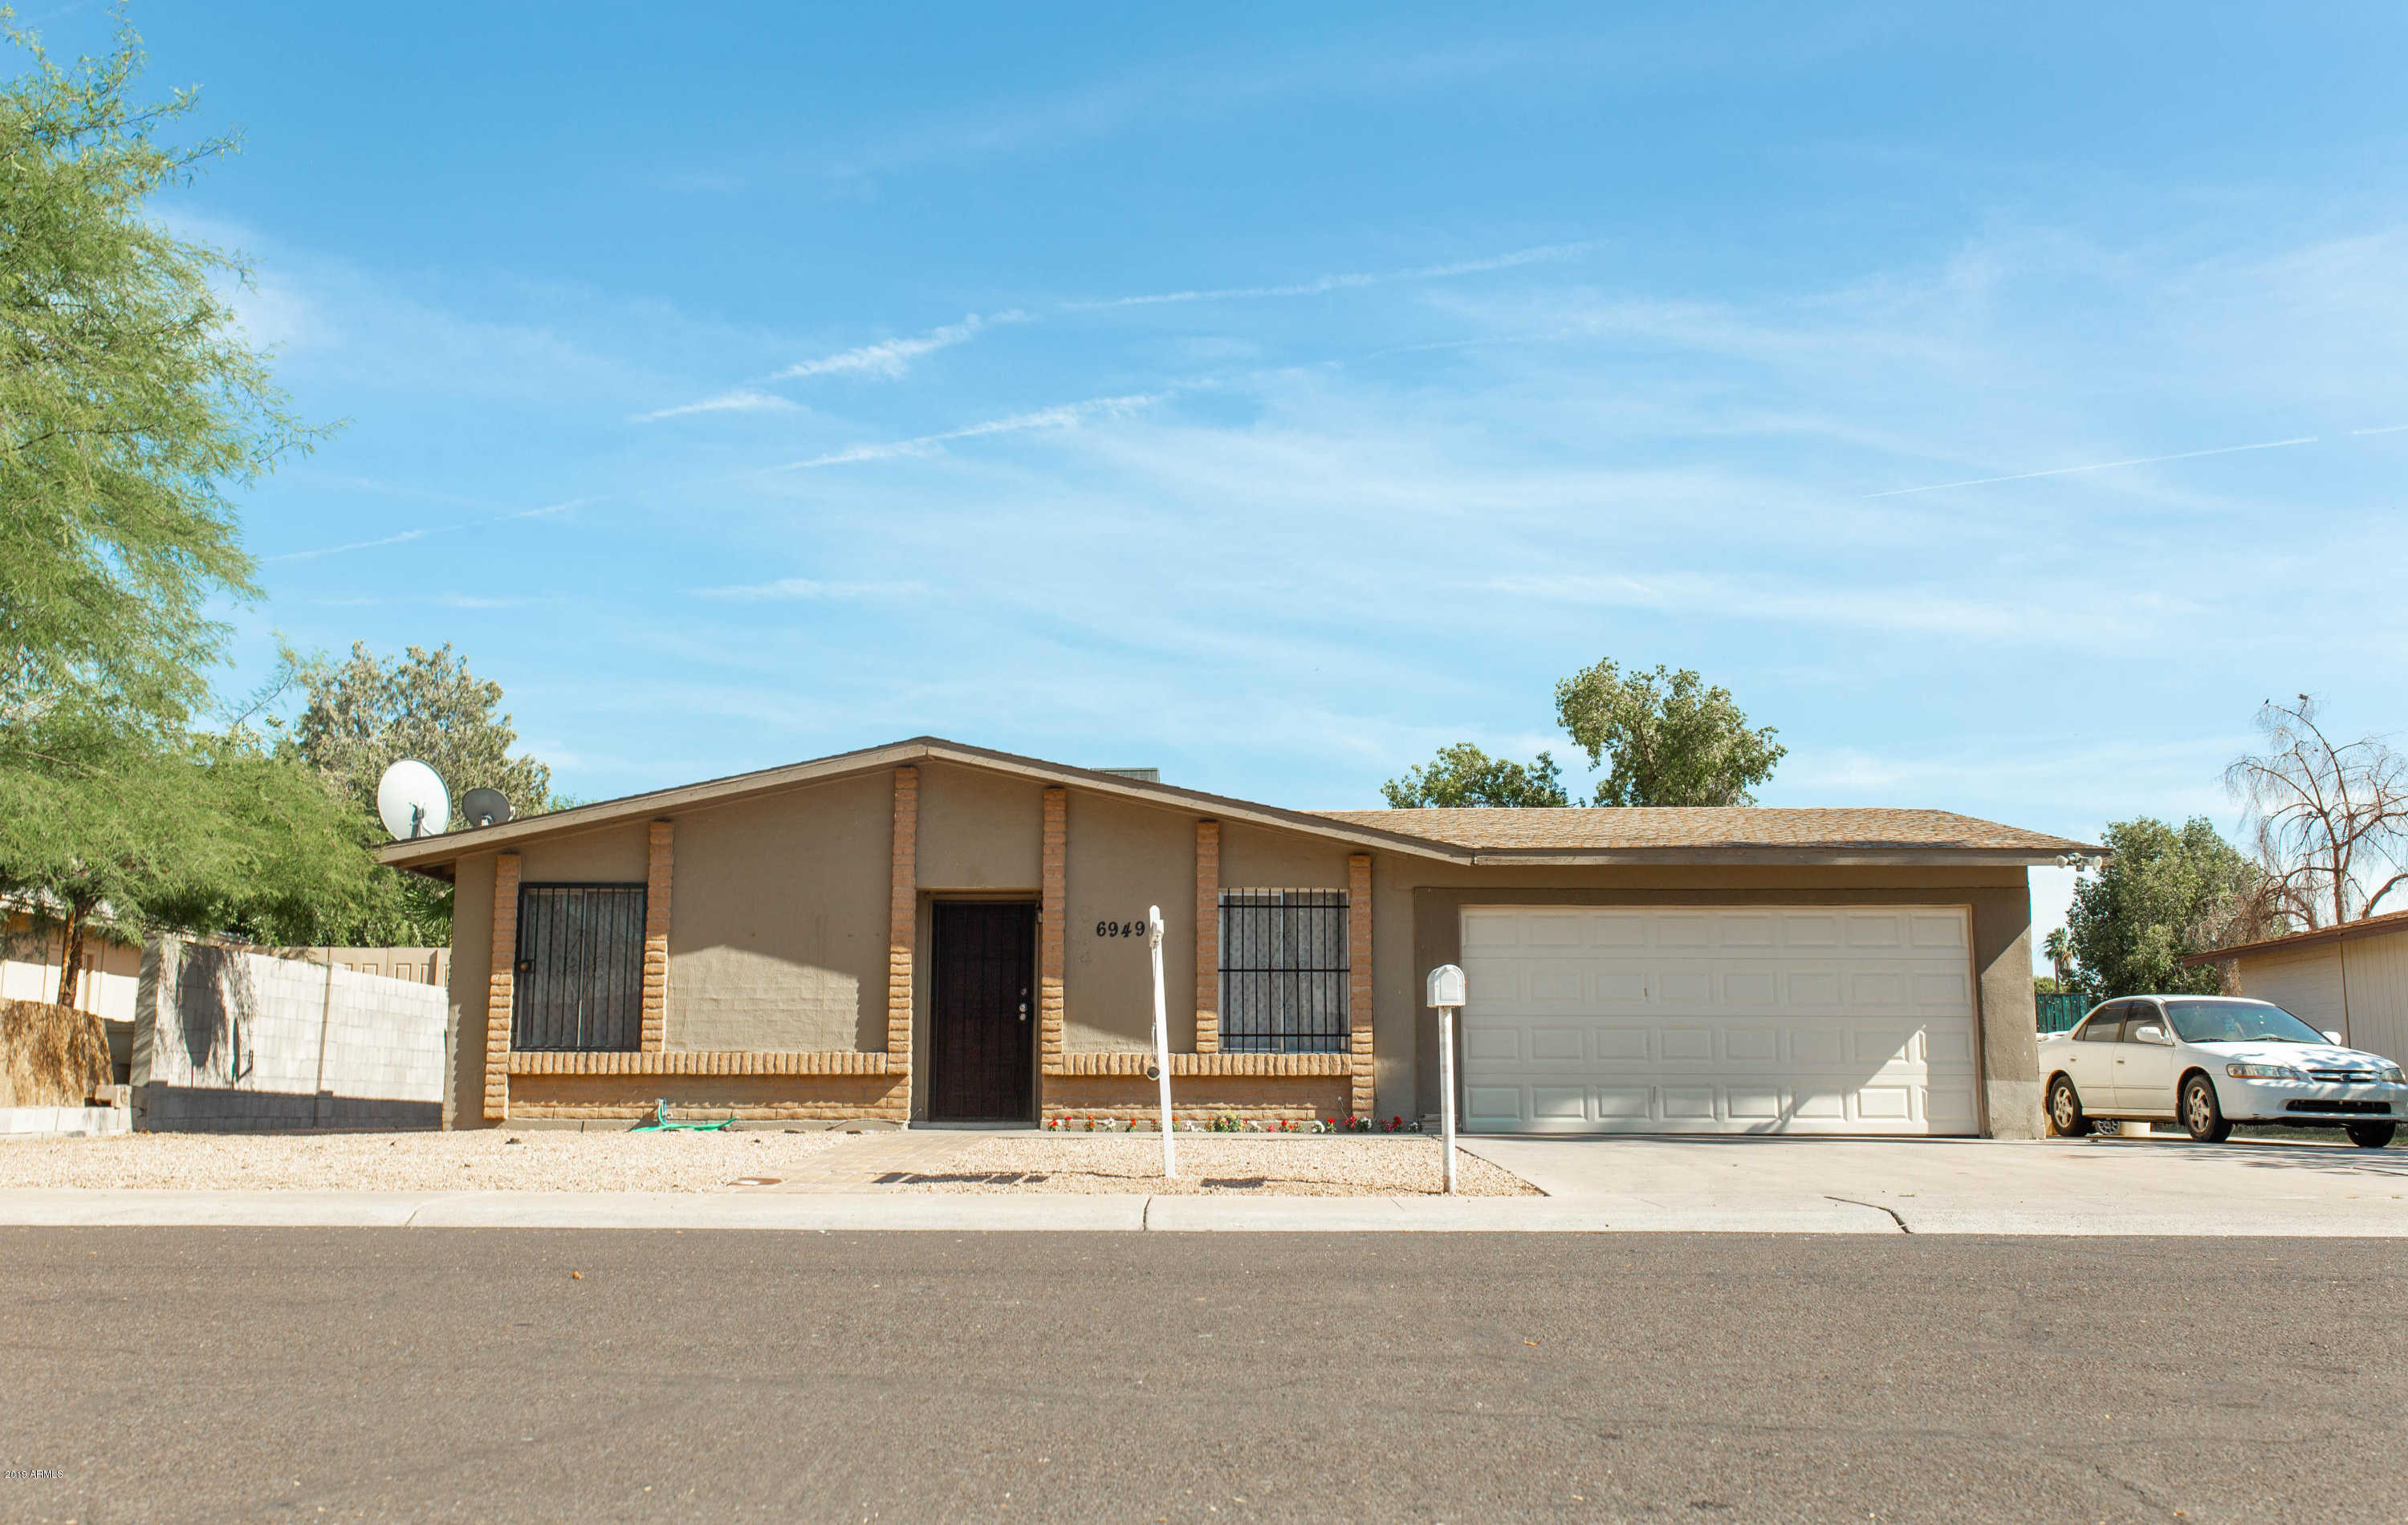 $204,900 - 3Br/2Ba - Home for Sale in Skyview West, Glendale